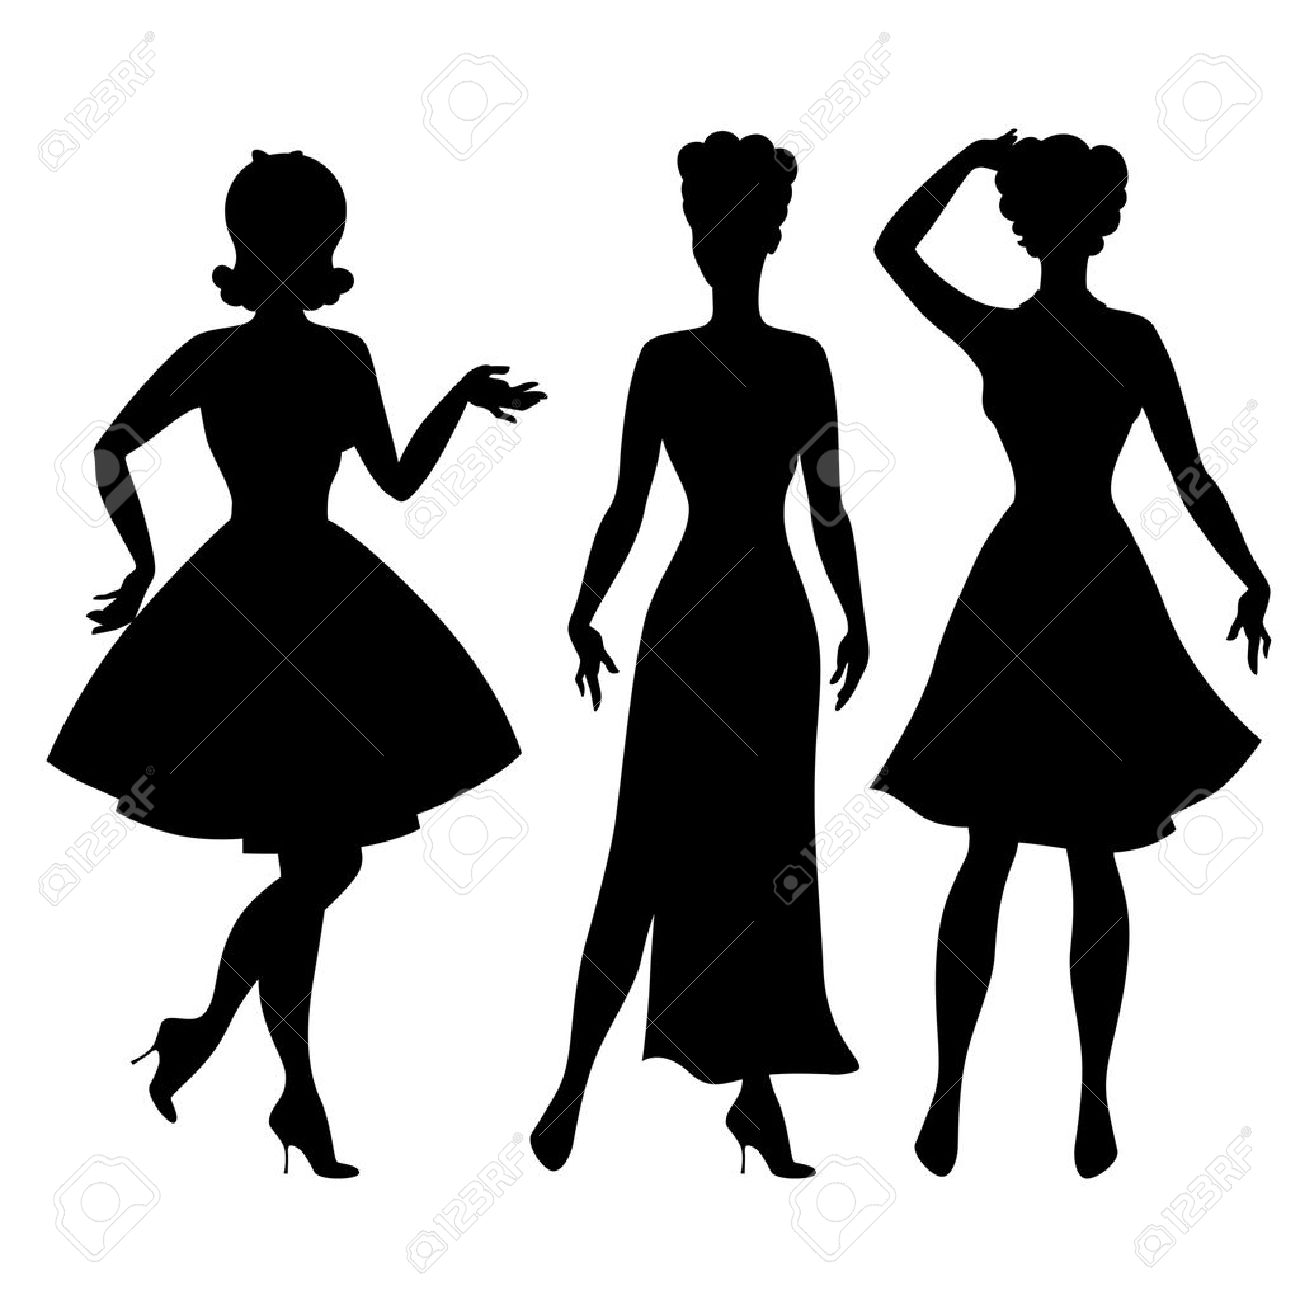 Women clipart border free clipart royalty free download Free Fashion Clipart, Download Free Clip Art, Free Clip Art on ... clipart royalty free download